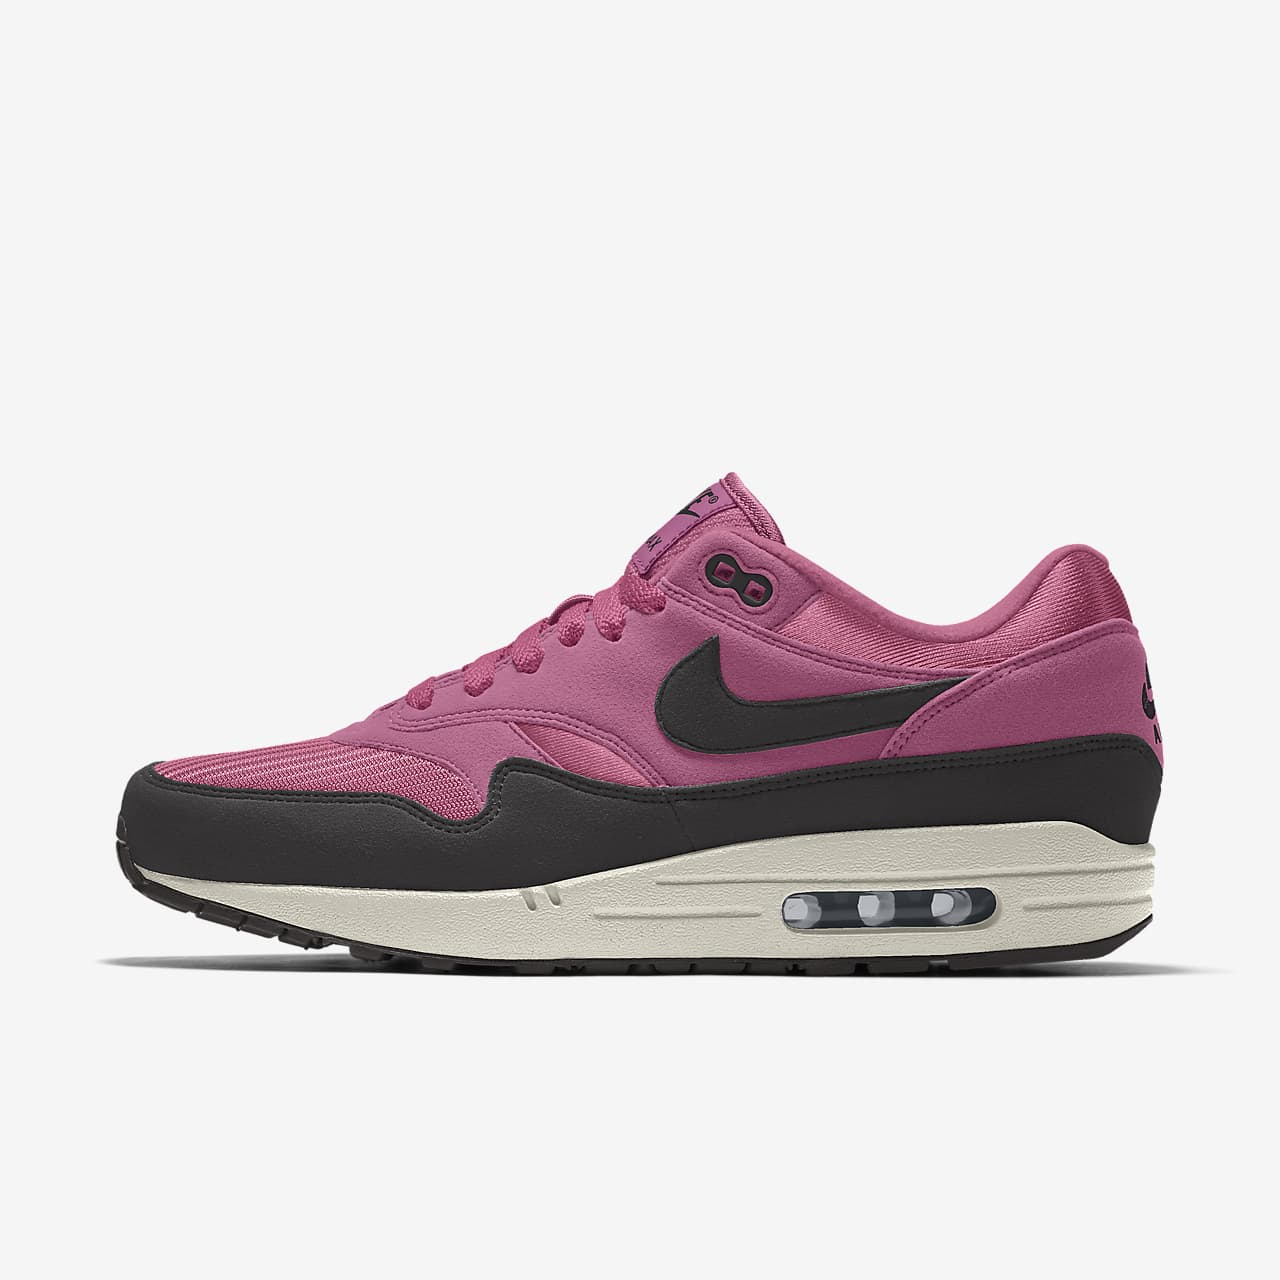 Chaussure personnalisable Nike Air Max 1 By You